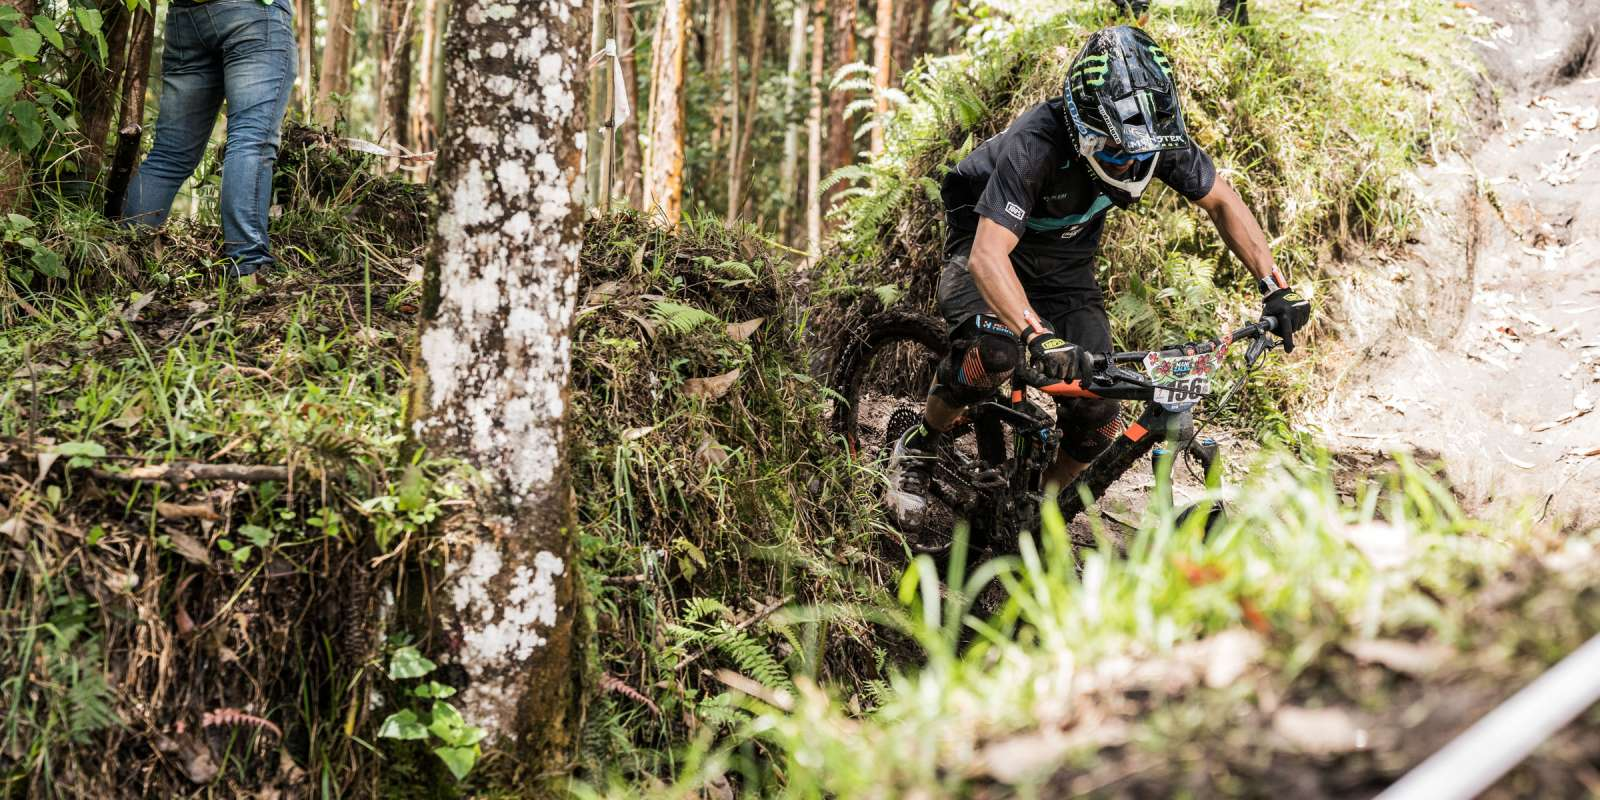 Action shots from EWS 2 race in Colombia